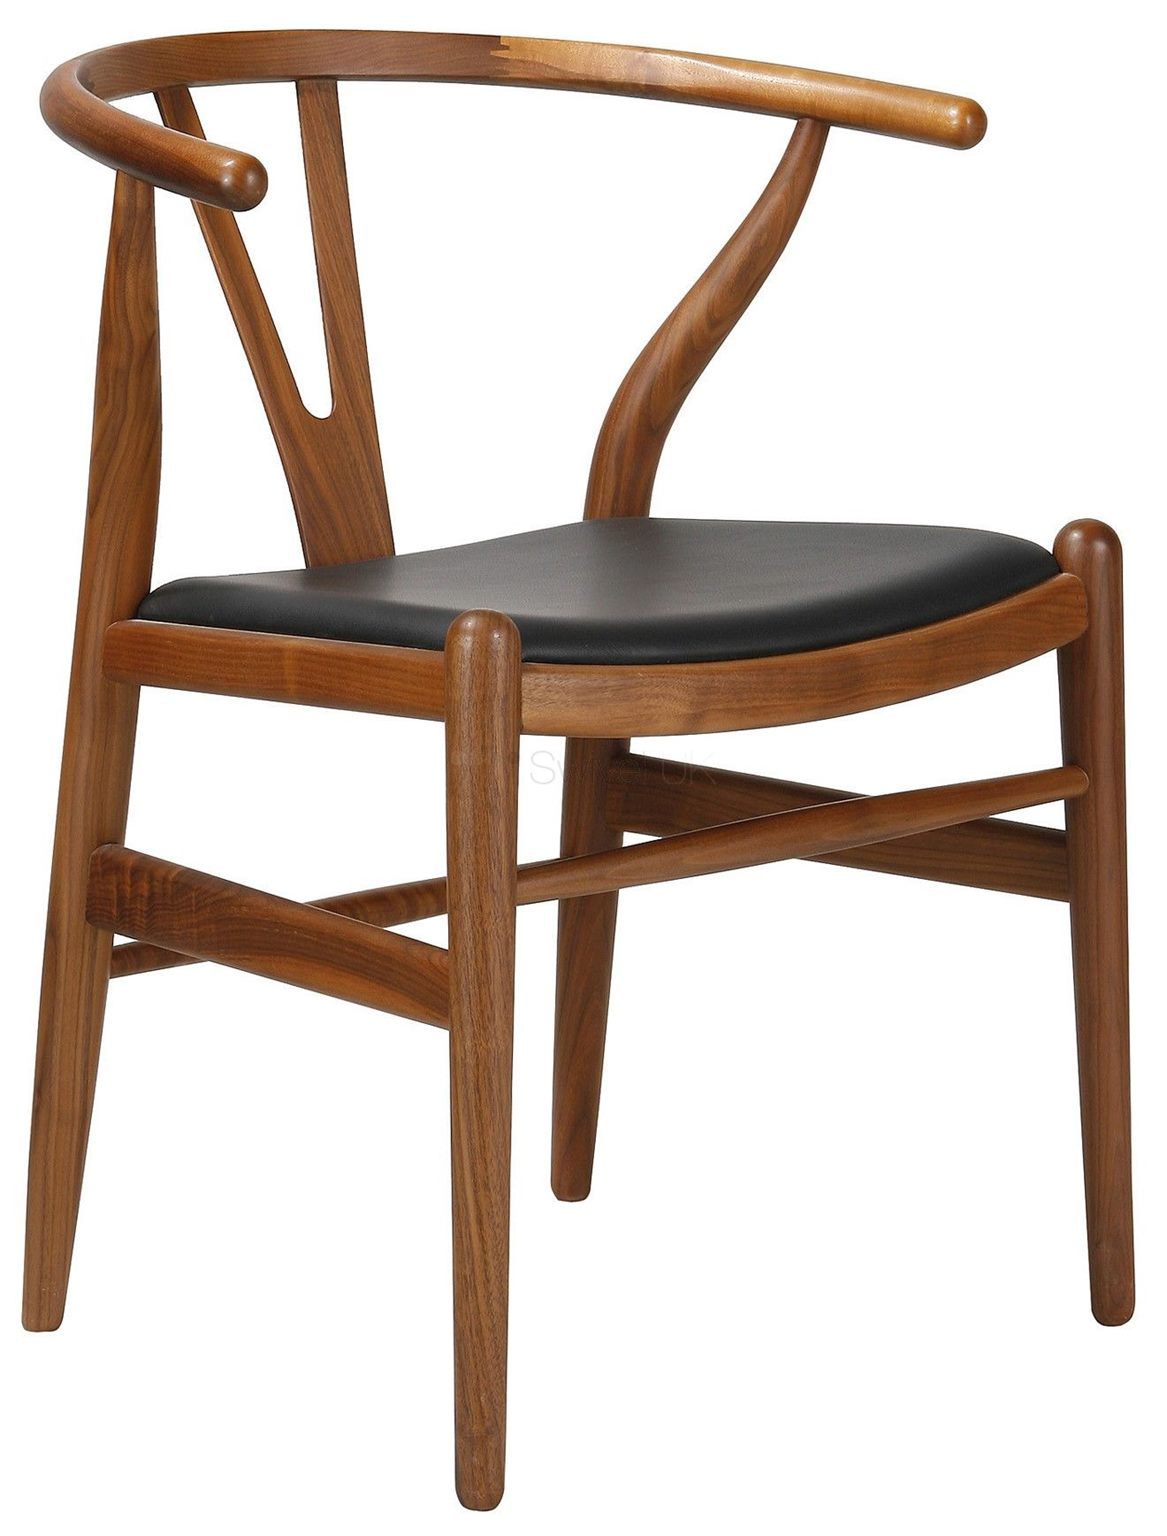 *MG*Replica HANS WISHBONE Dining Chair with Top Grain Leather